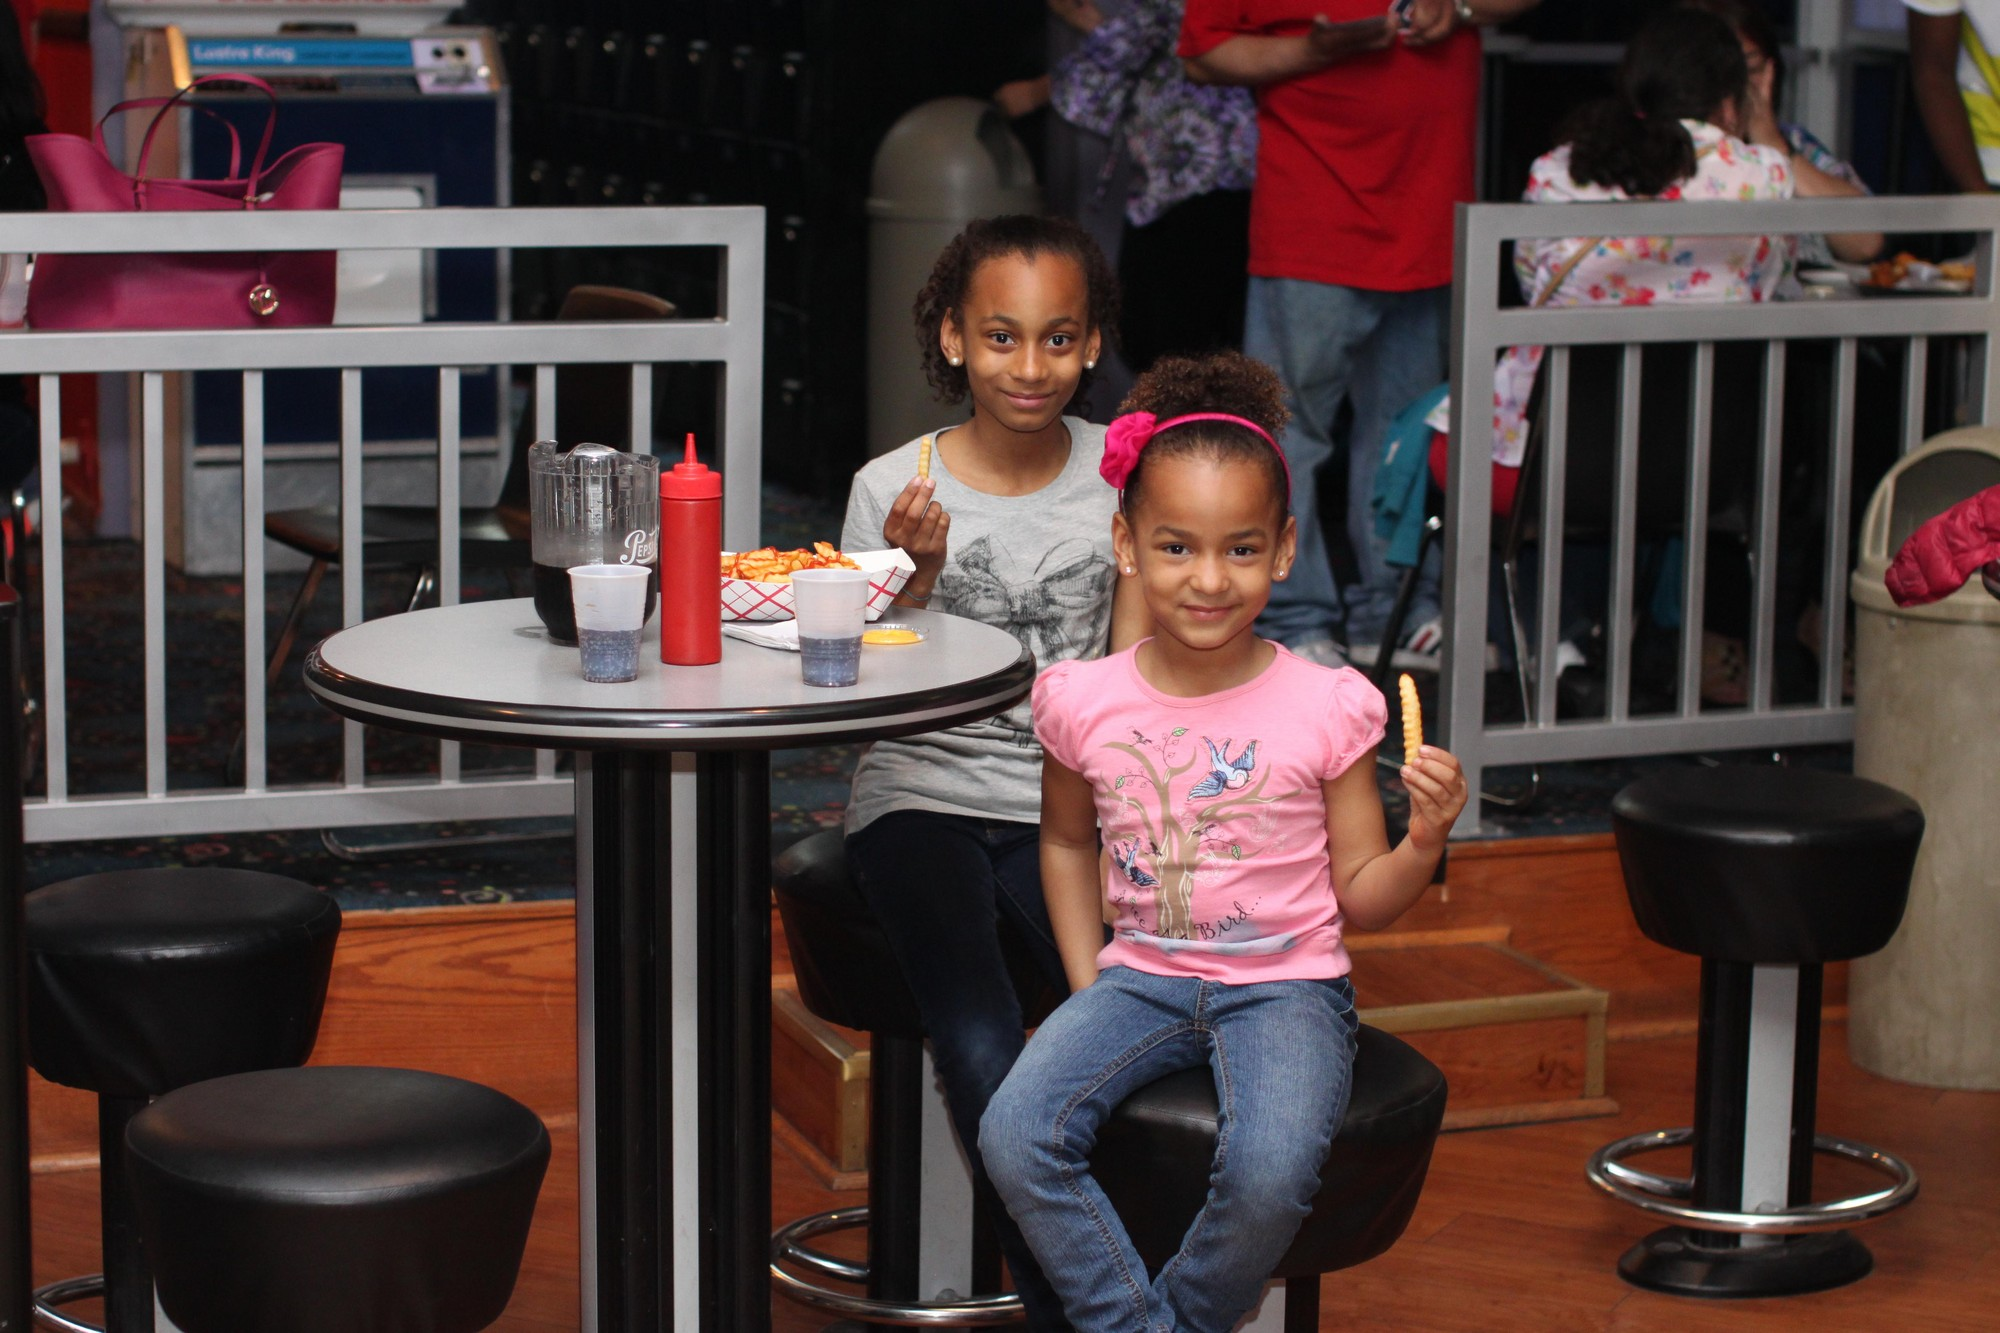 In addition to bowling the children enjoyed some snacks. Sisters Asia, 10, and India Campbell, 5, showed off their French fries.